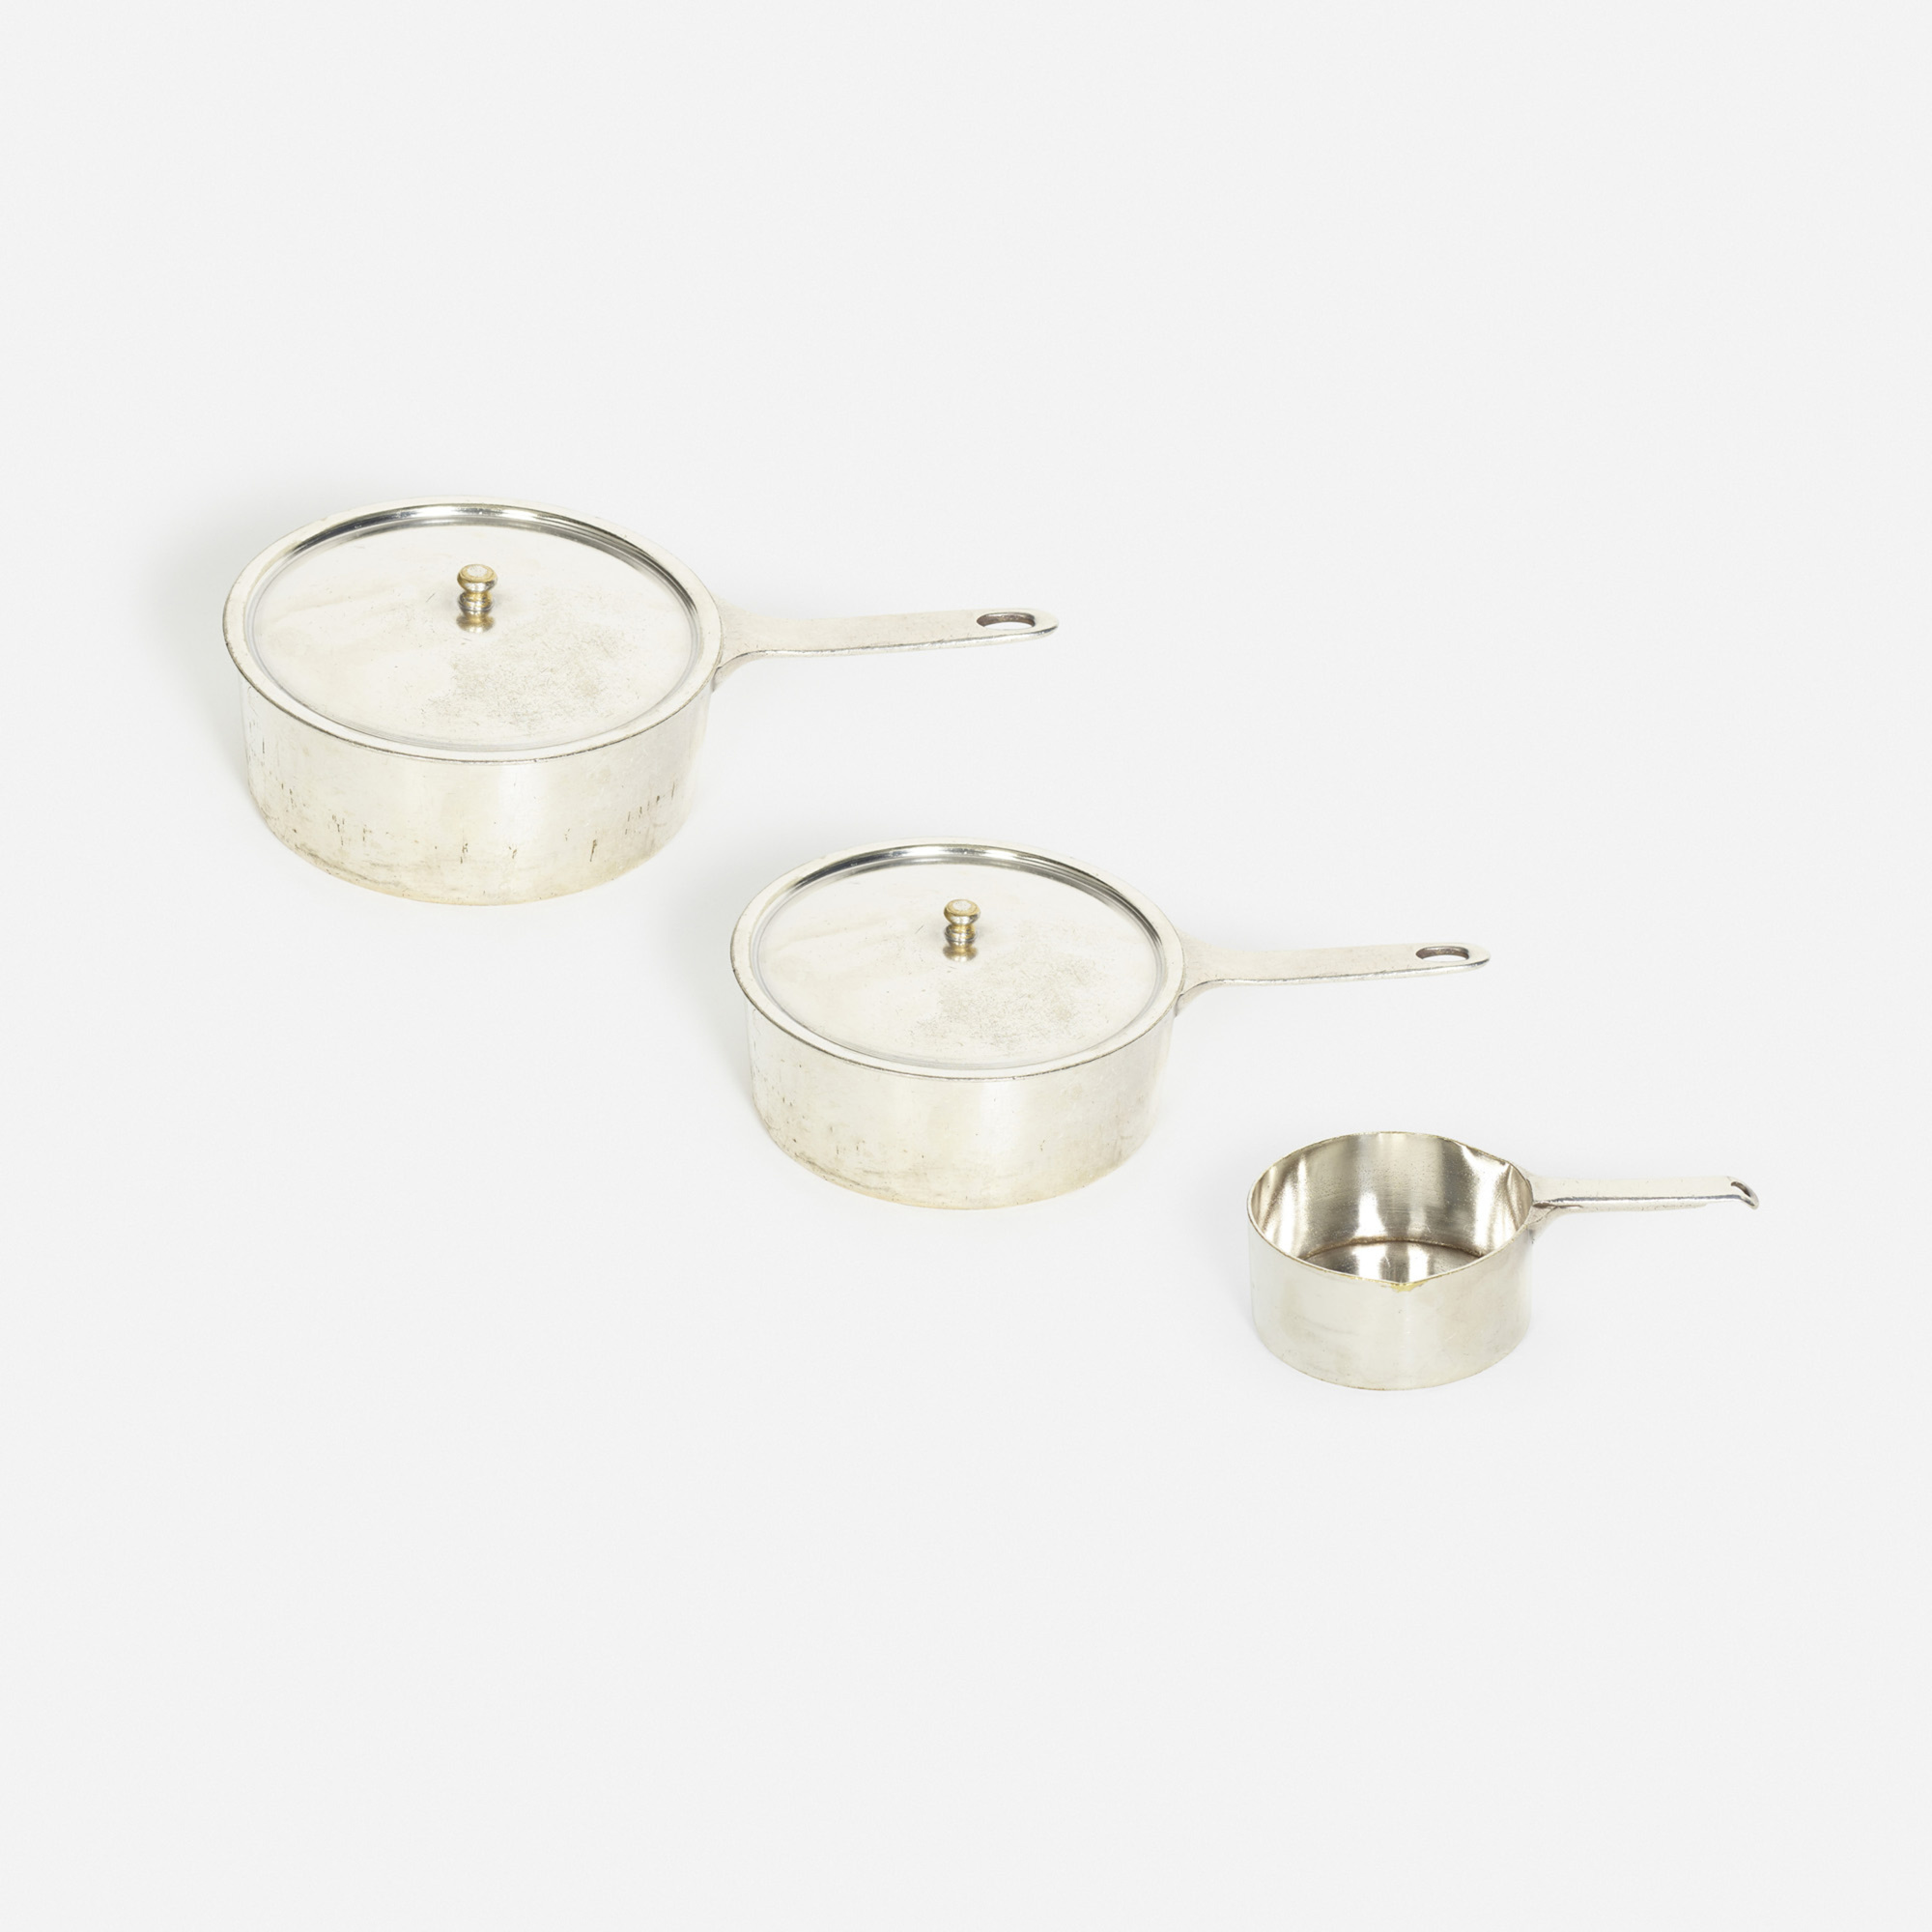 856: Garth and Ada Louise Huxtable / sauce pots from the kitchen of The Four Seasons, set of three (1 of 1)